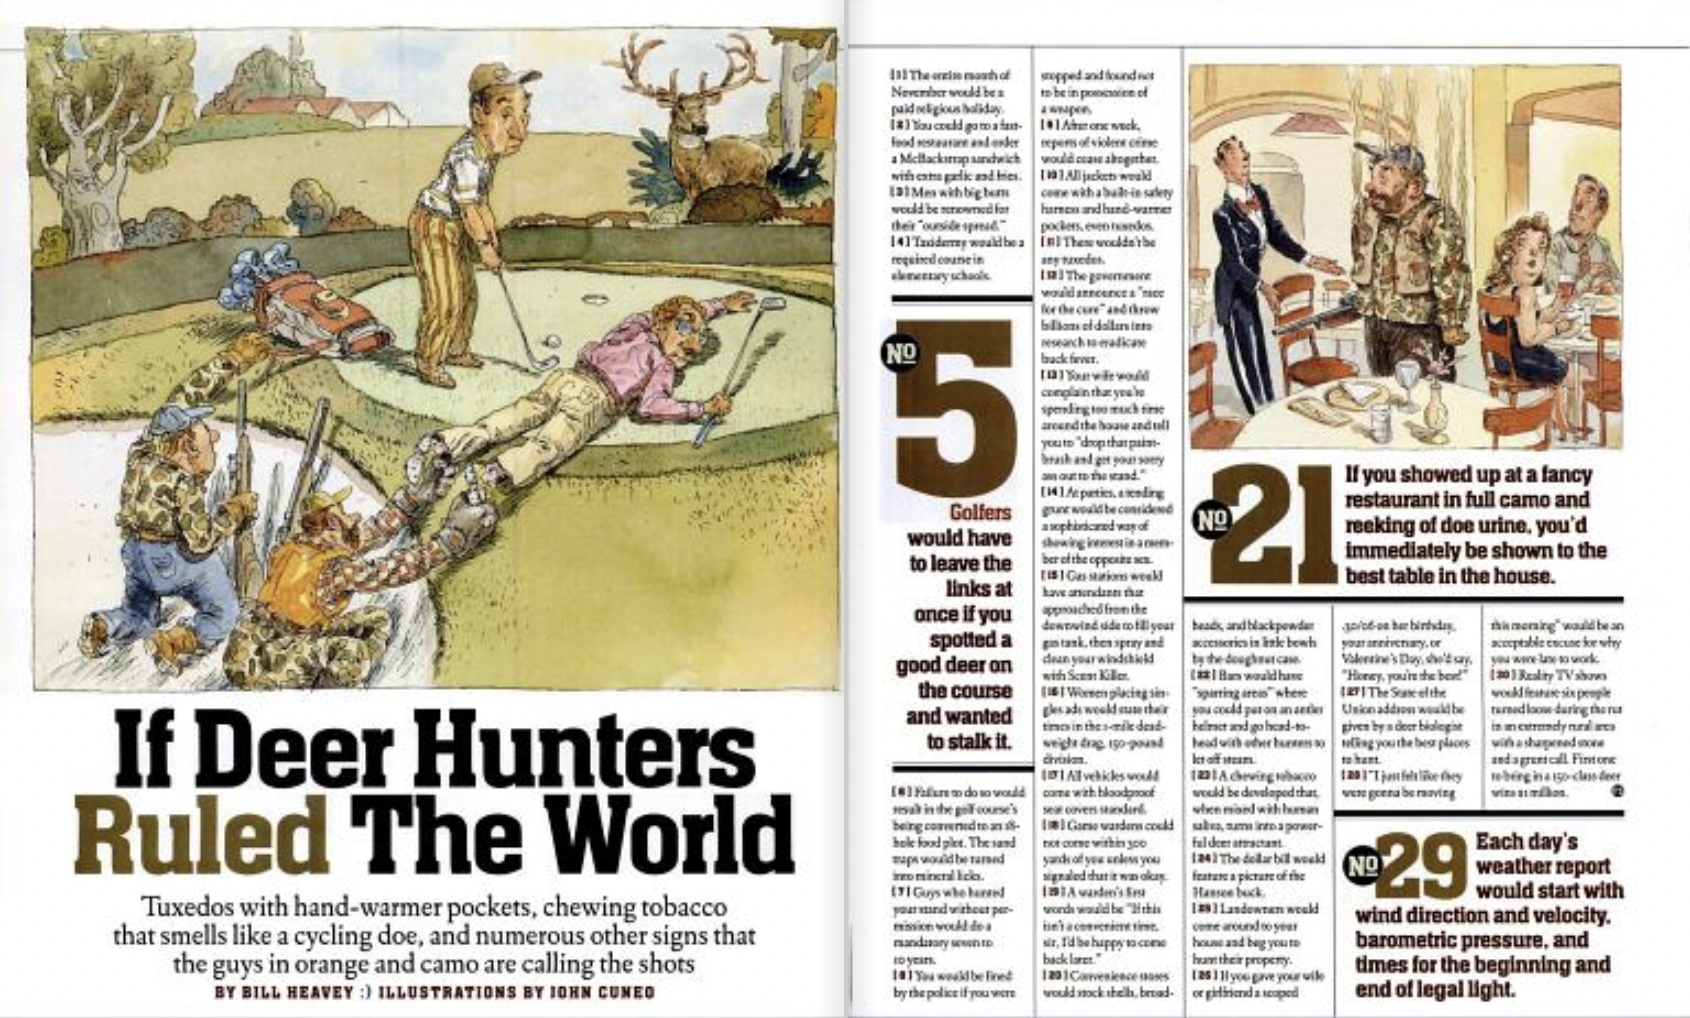 F&S Classics: 30 Things That Would Happen if Deer Hunters Ruled the World